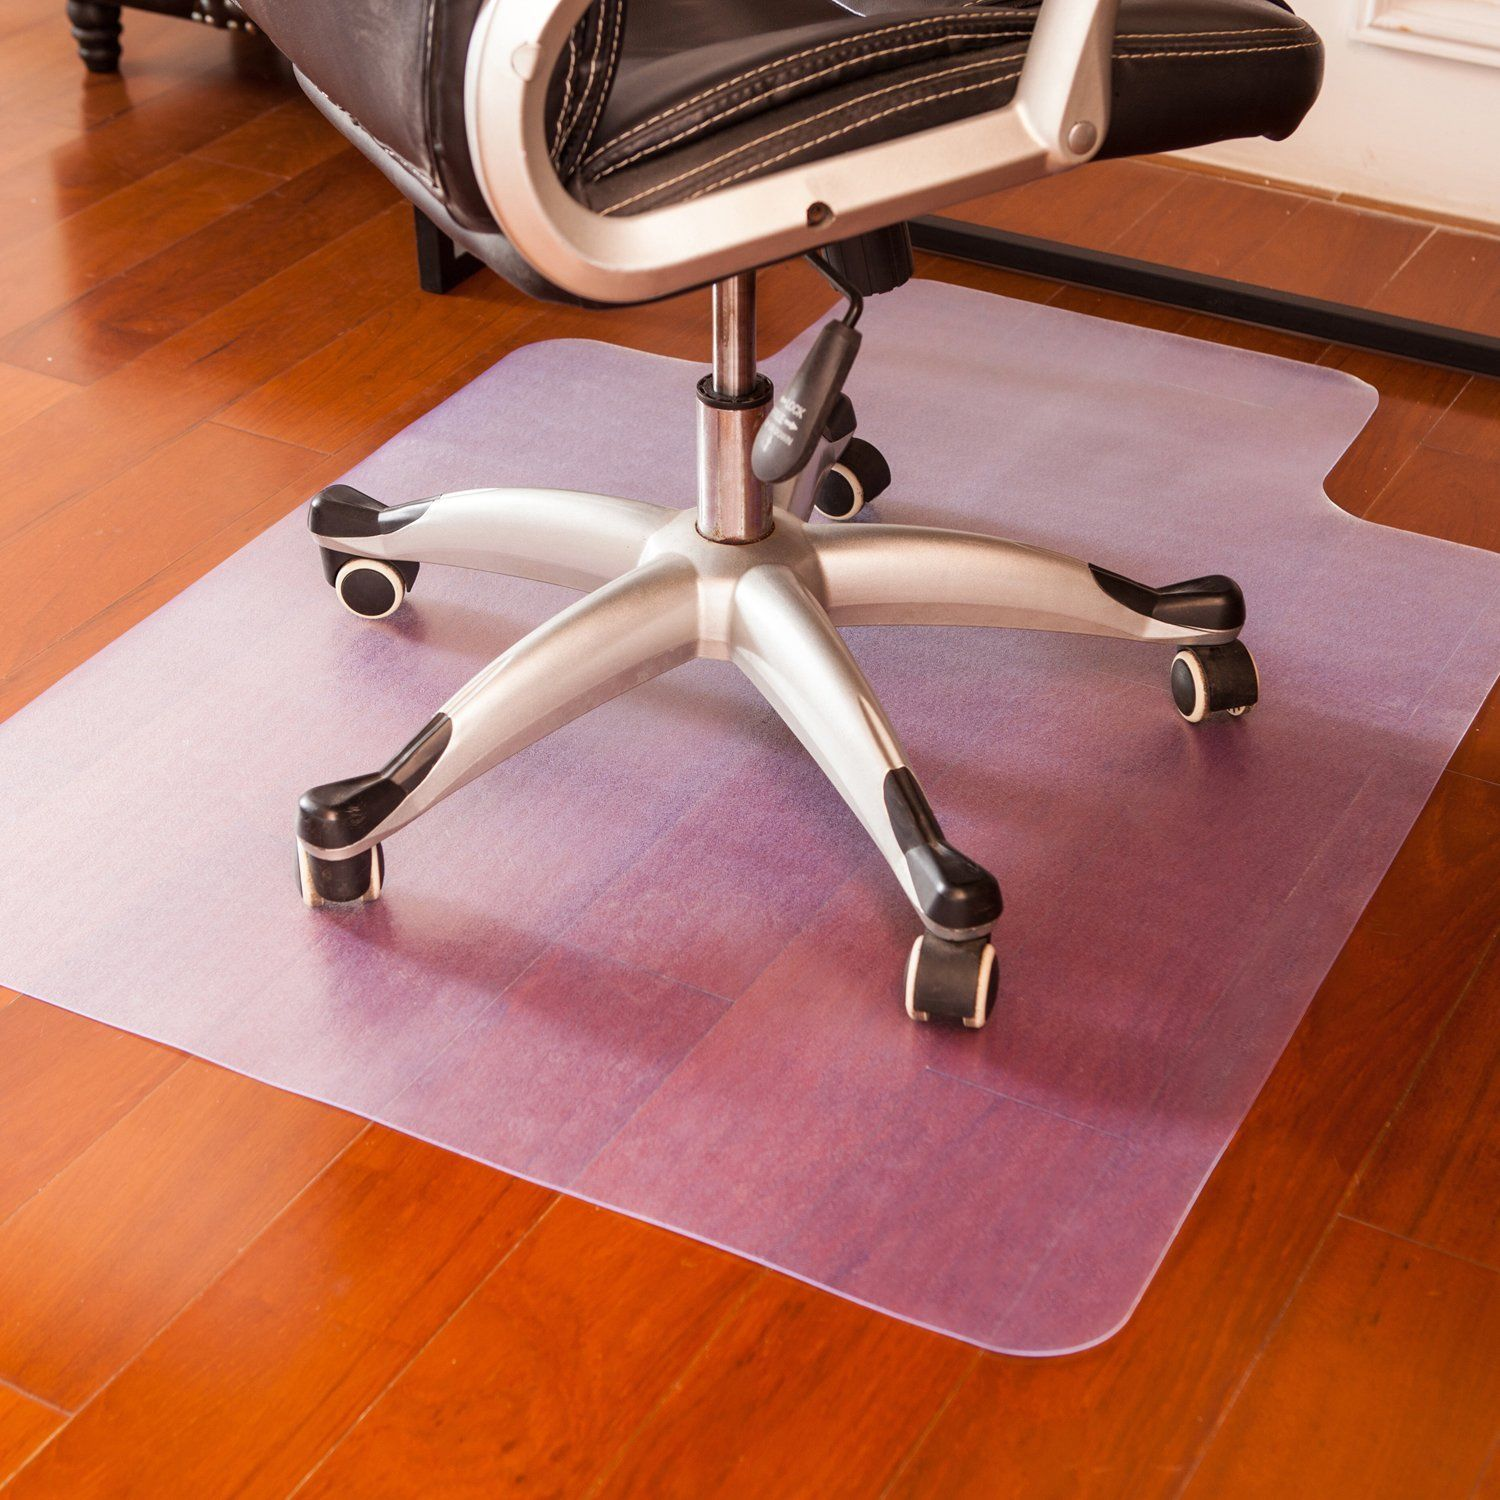 Ktaxon Office Chair Mat For Hardwood Floors Protector Non Slip Rug PVC Mats